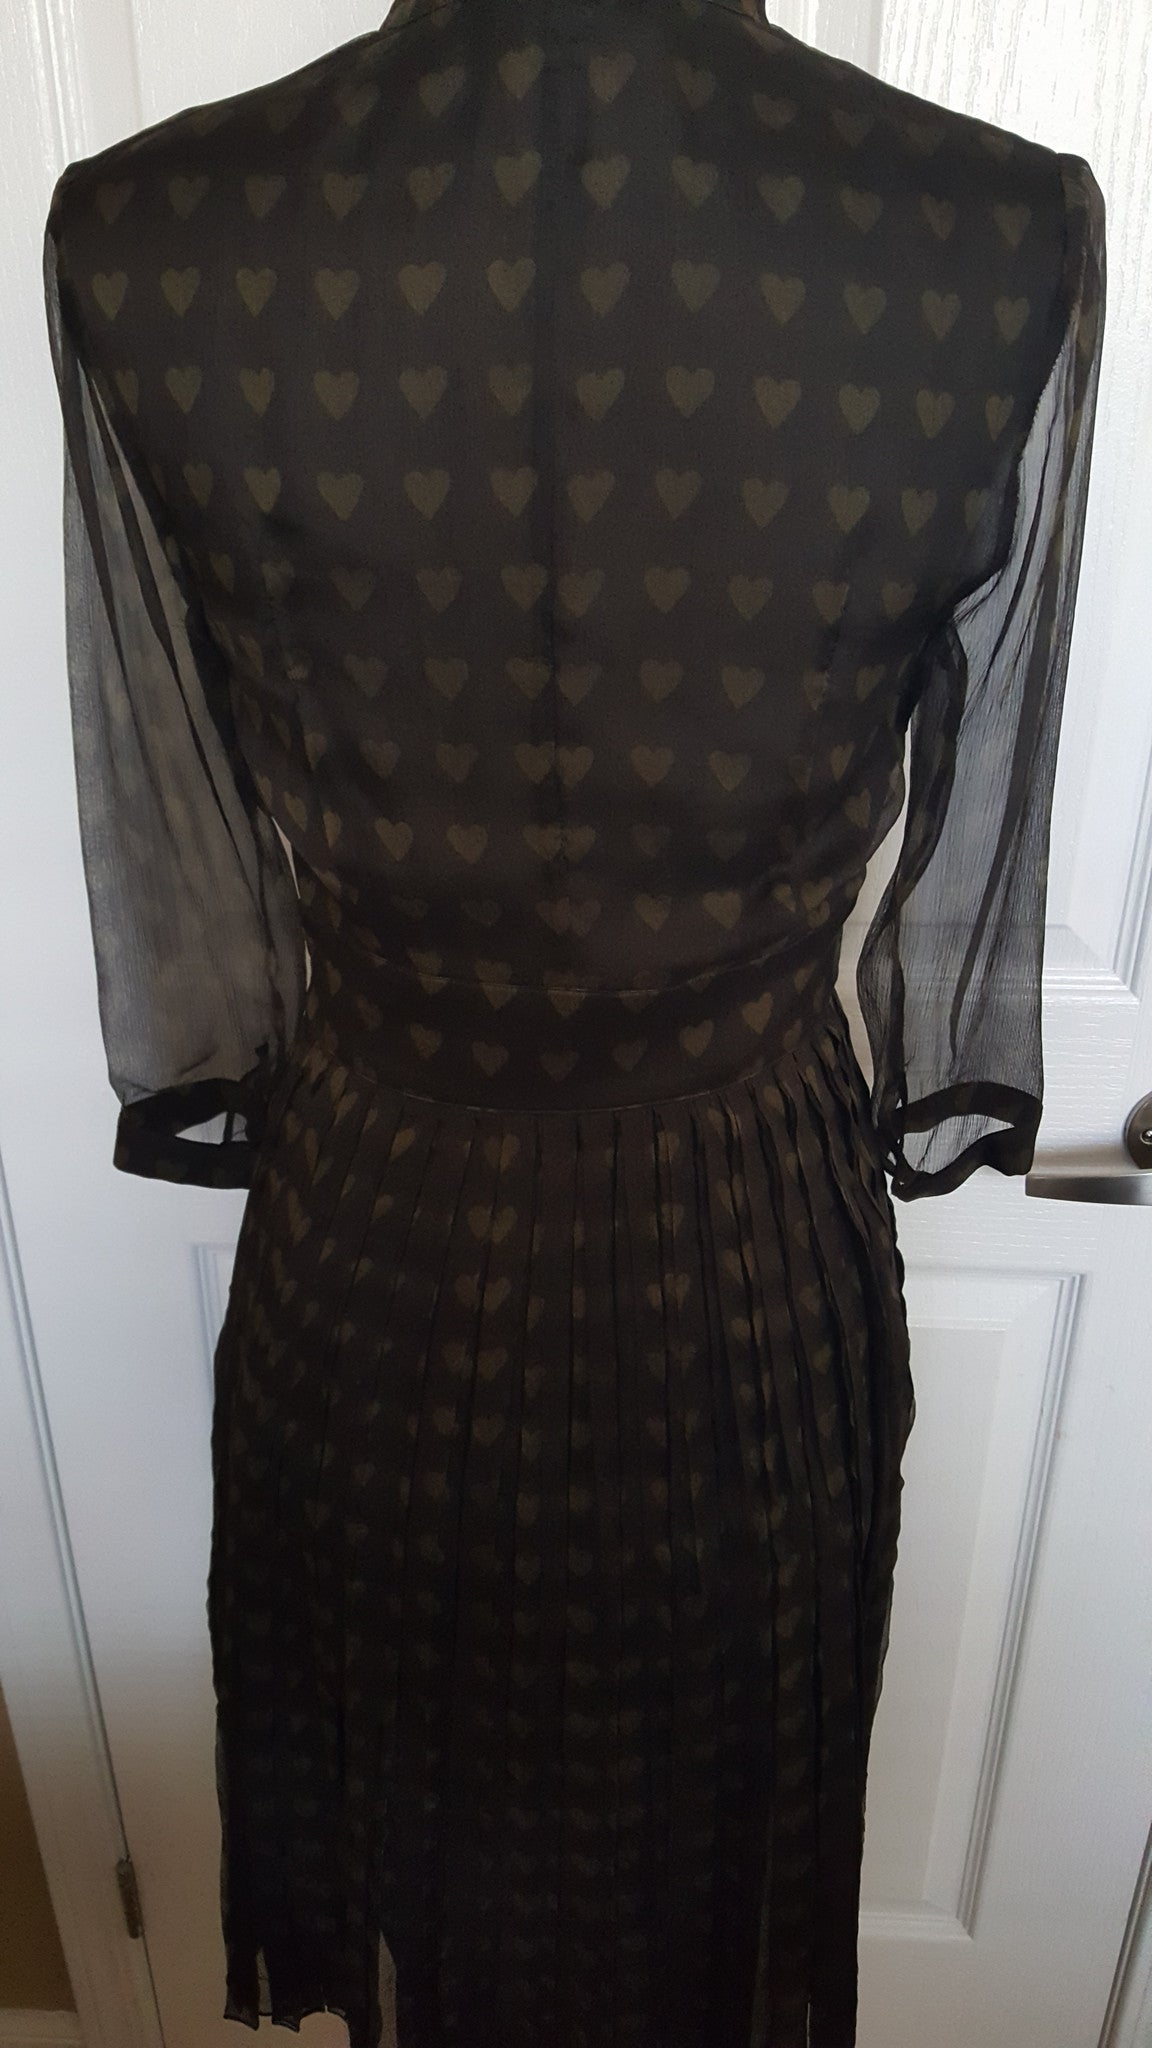 BURBERRY LONDON SILK BLACK/OLIVE GREEN HEART PLEATED DRESS - SIZE US 4